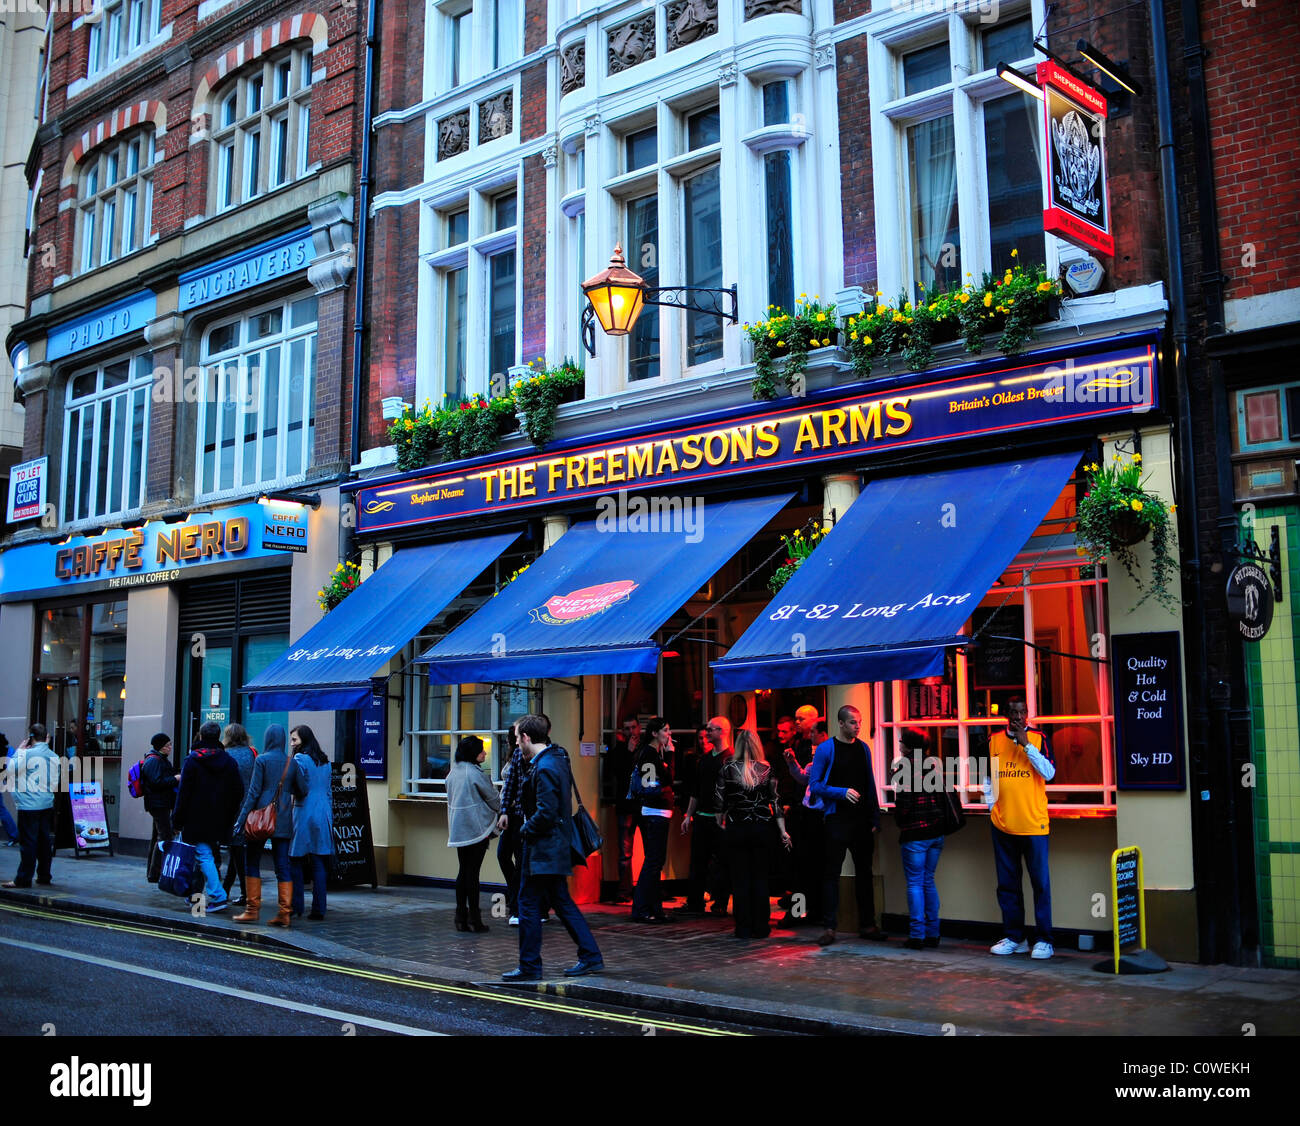 The Freemasons Arms Pub in London - Stock Image